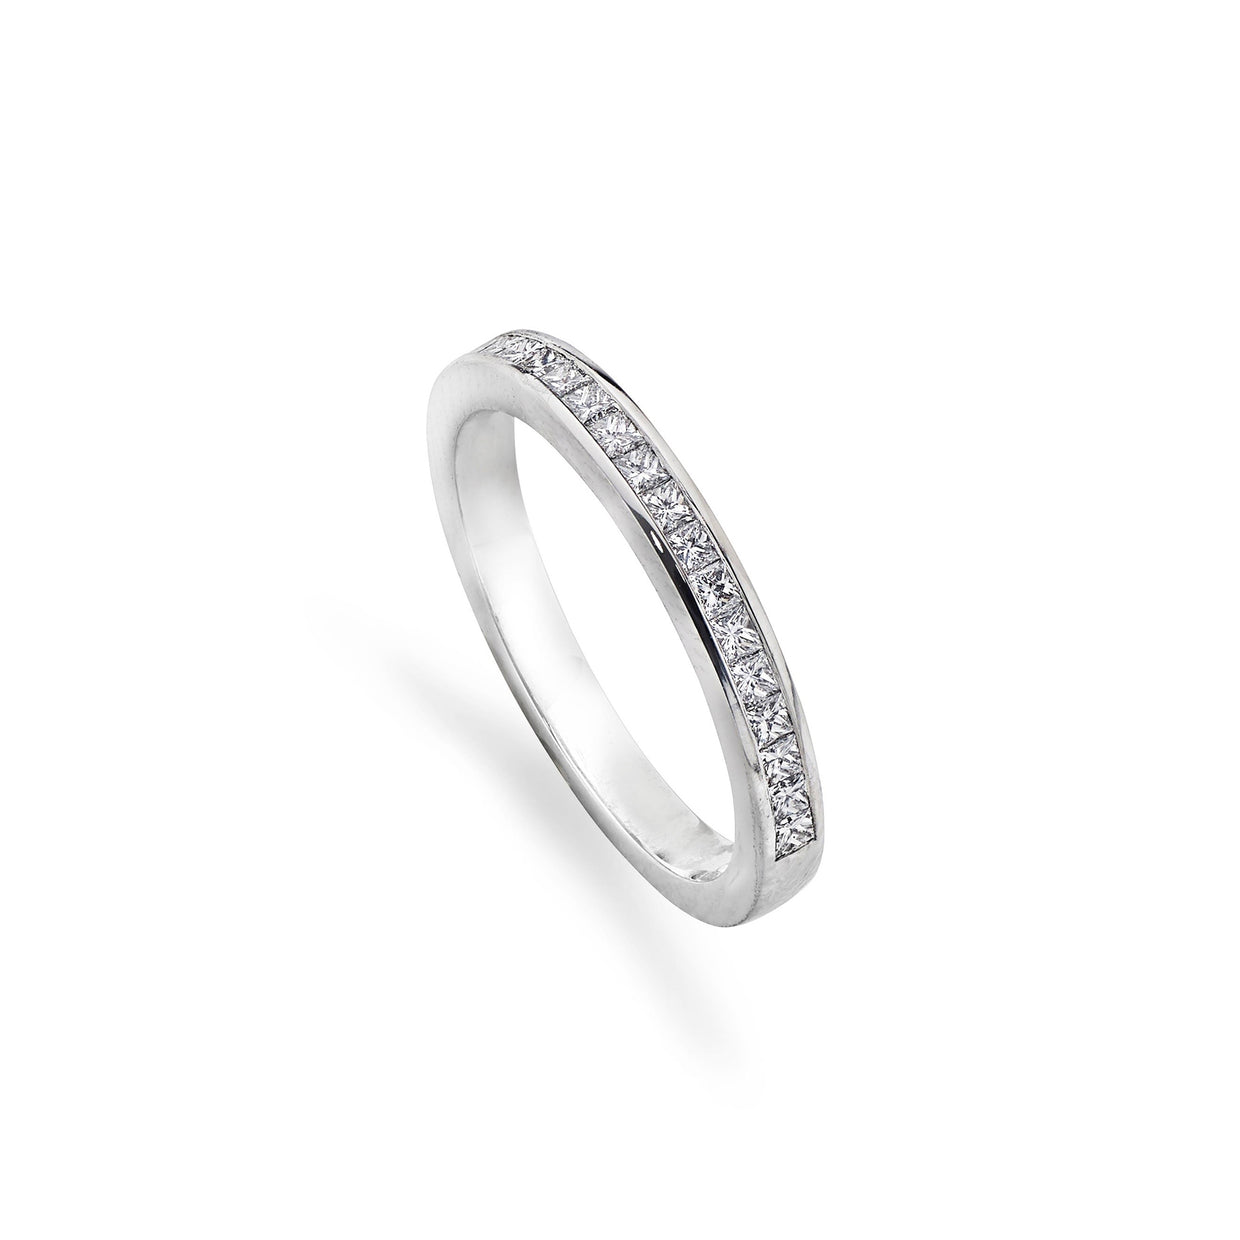 23 Stone Princess-Cut Diamond Eternity Ring in Platinum-Hamilton & Inches